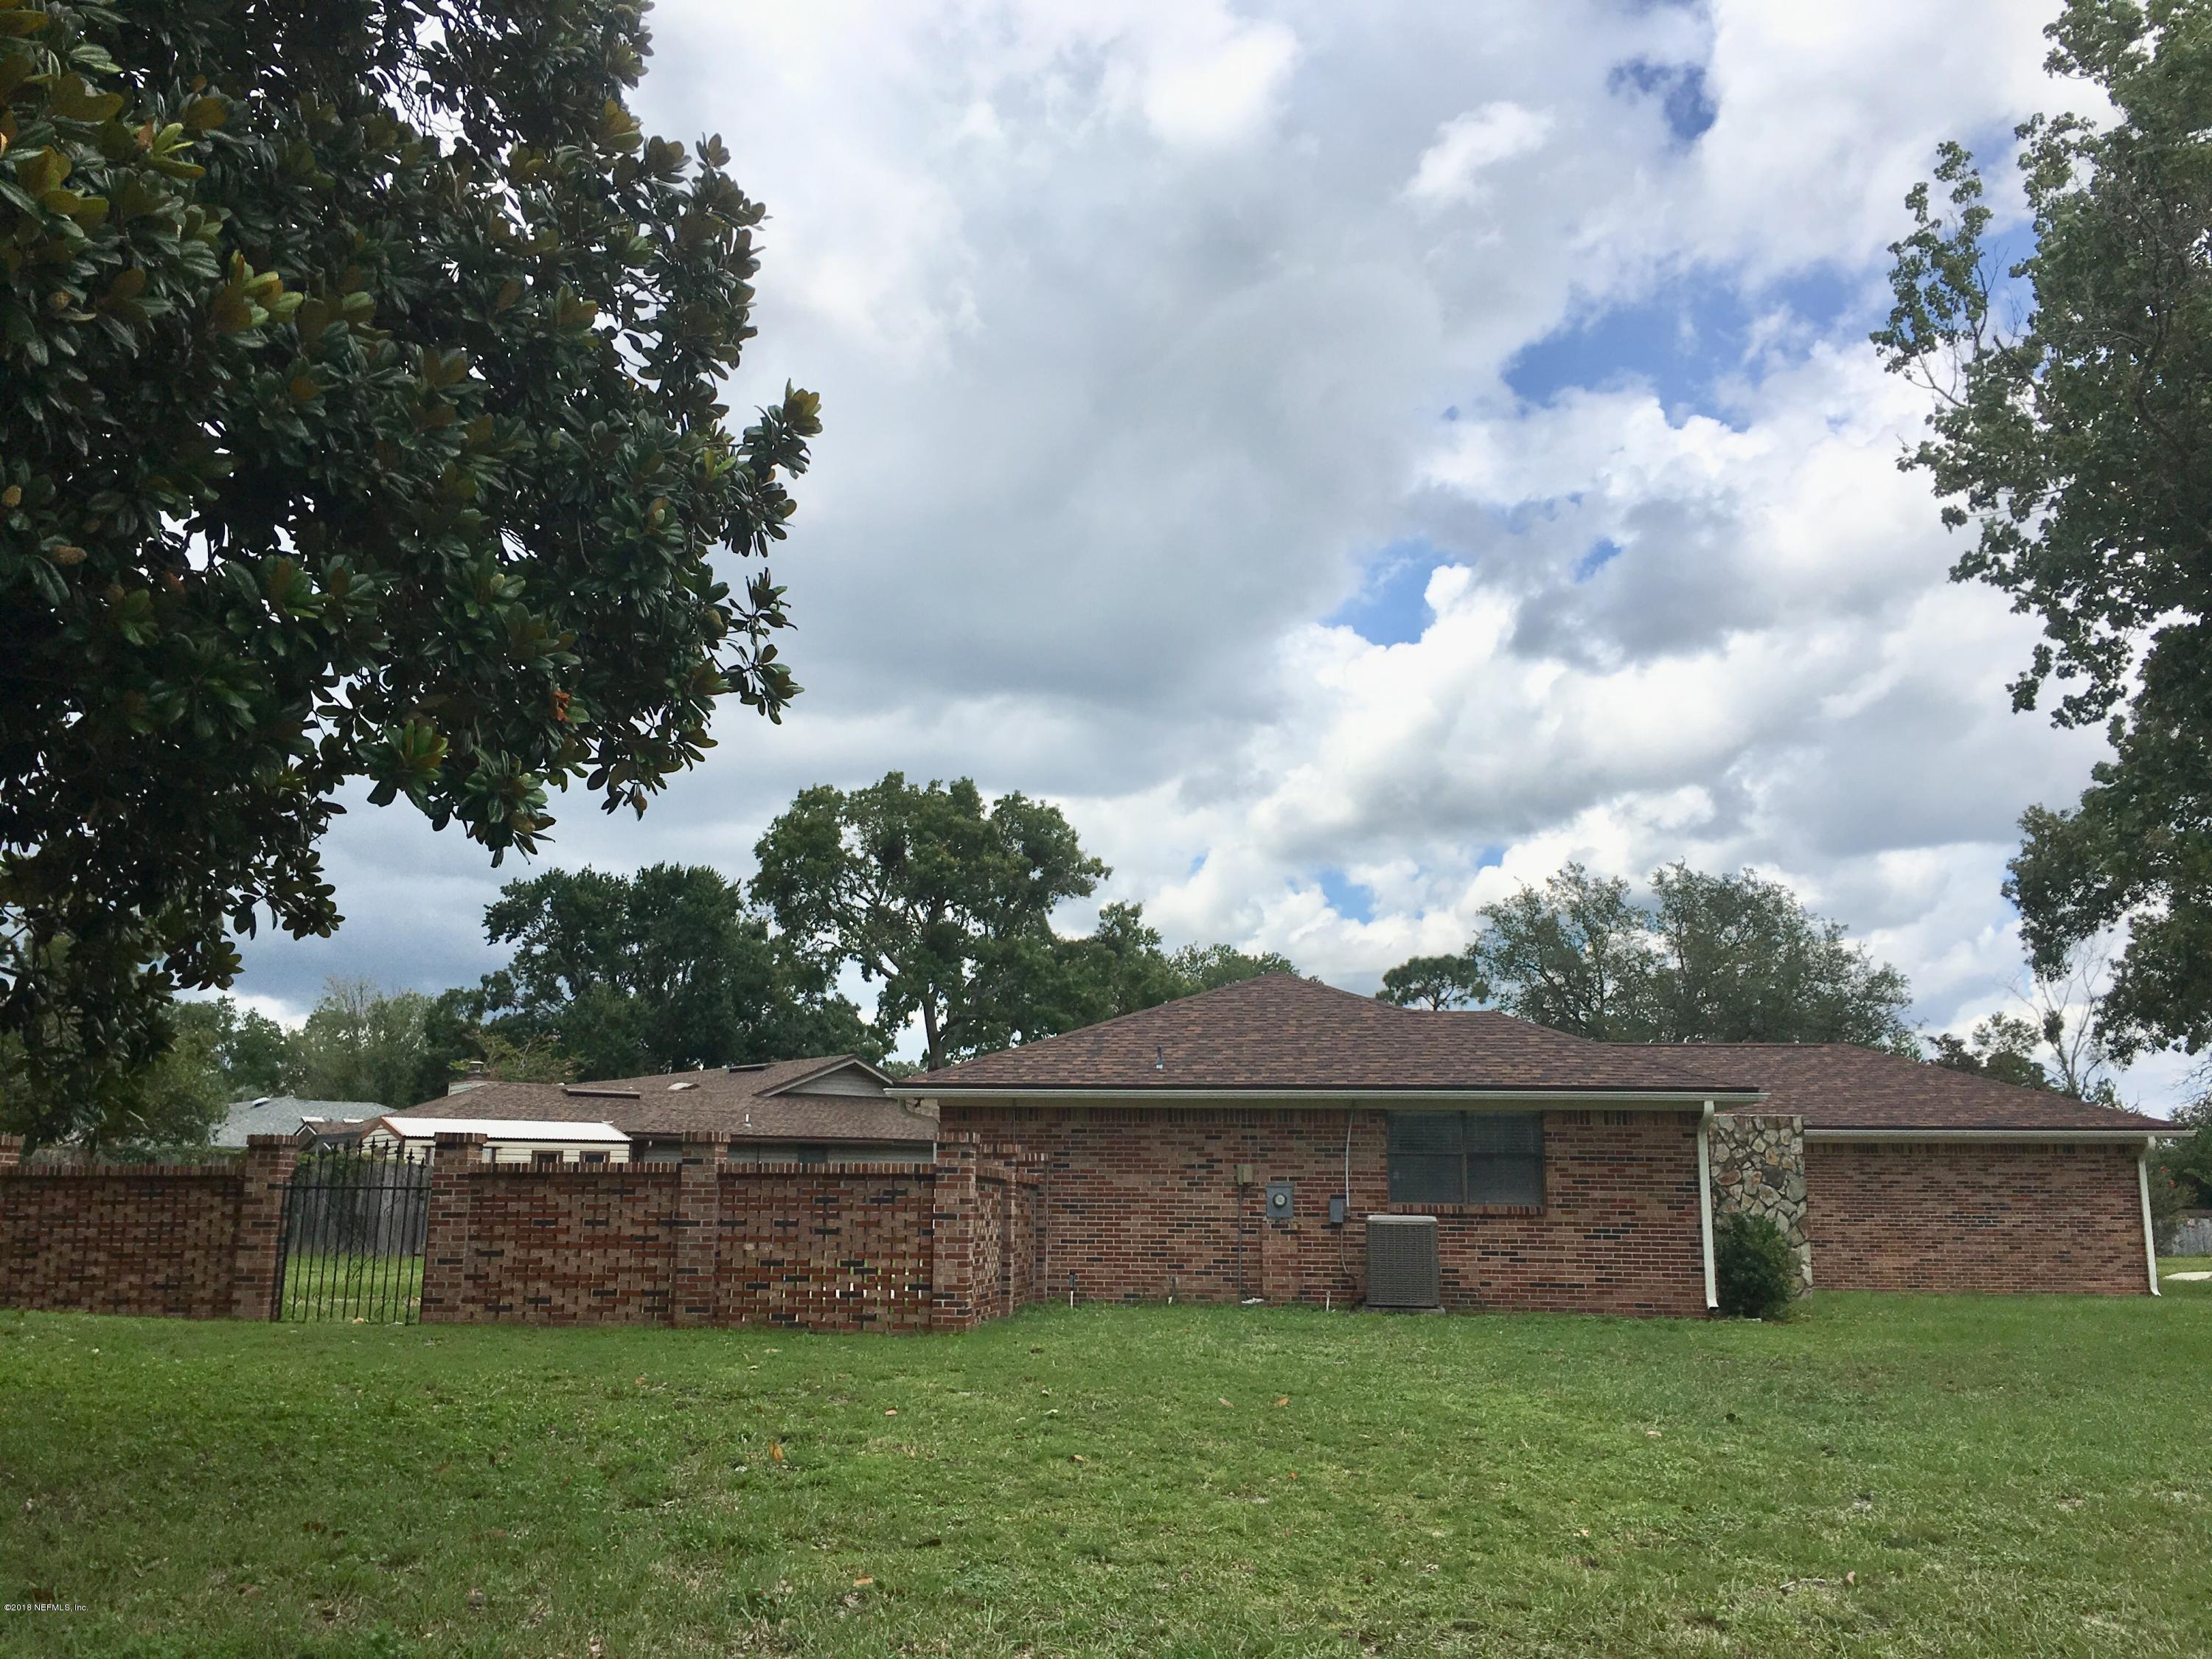 2531 RIDGECREST, ORANGE PARK, FLORIDA 32065, 3 Bedrooms Bedrooms, ,2 BathroomsBathrooms,Residential - single family,For sale,RIDGECREST,949807